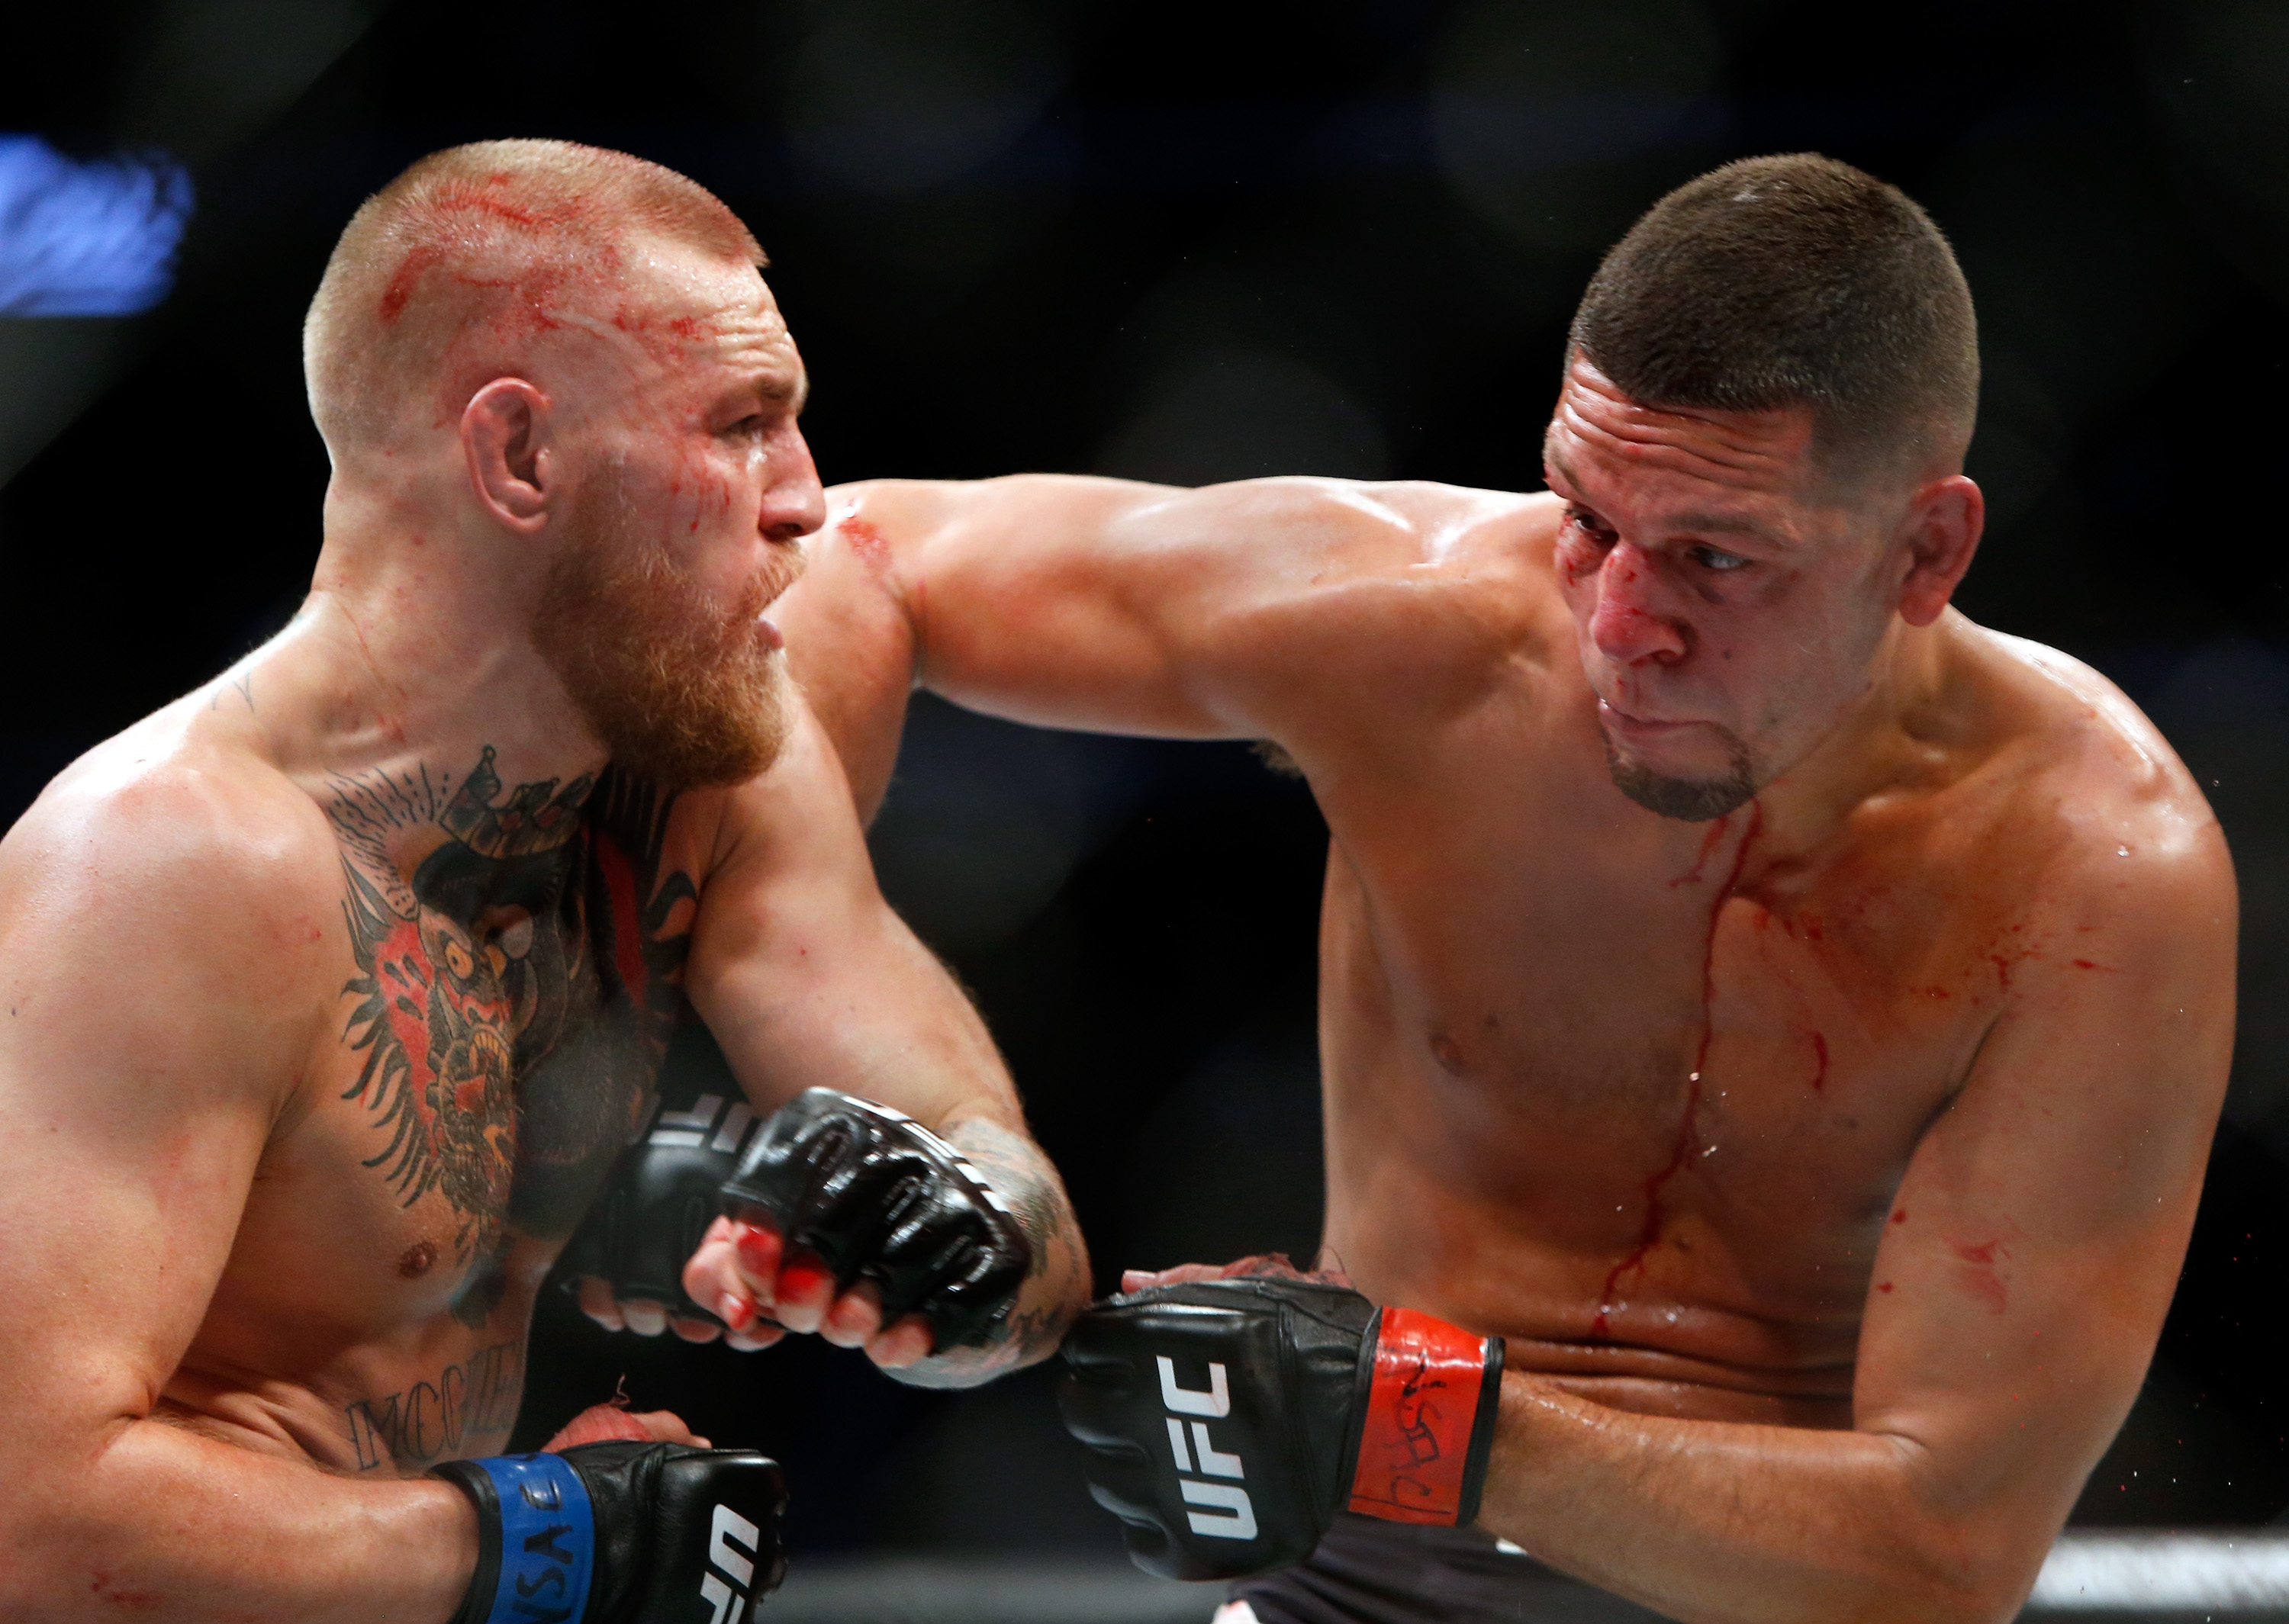 GettyImages 592620850 This Is How Long Nate Diaz Could Be Banned For Vaping Cannabis